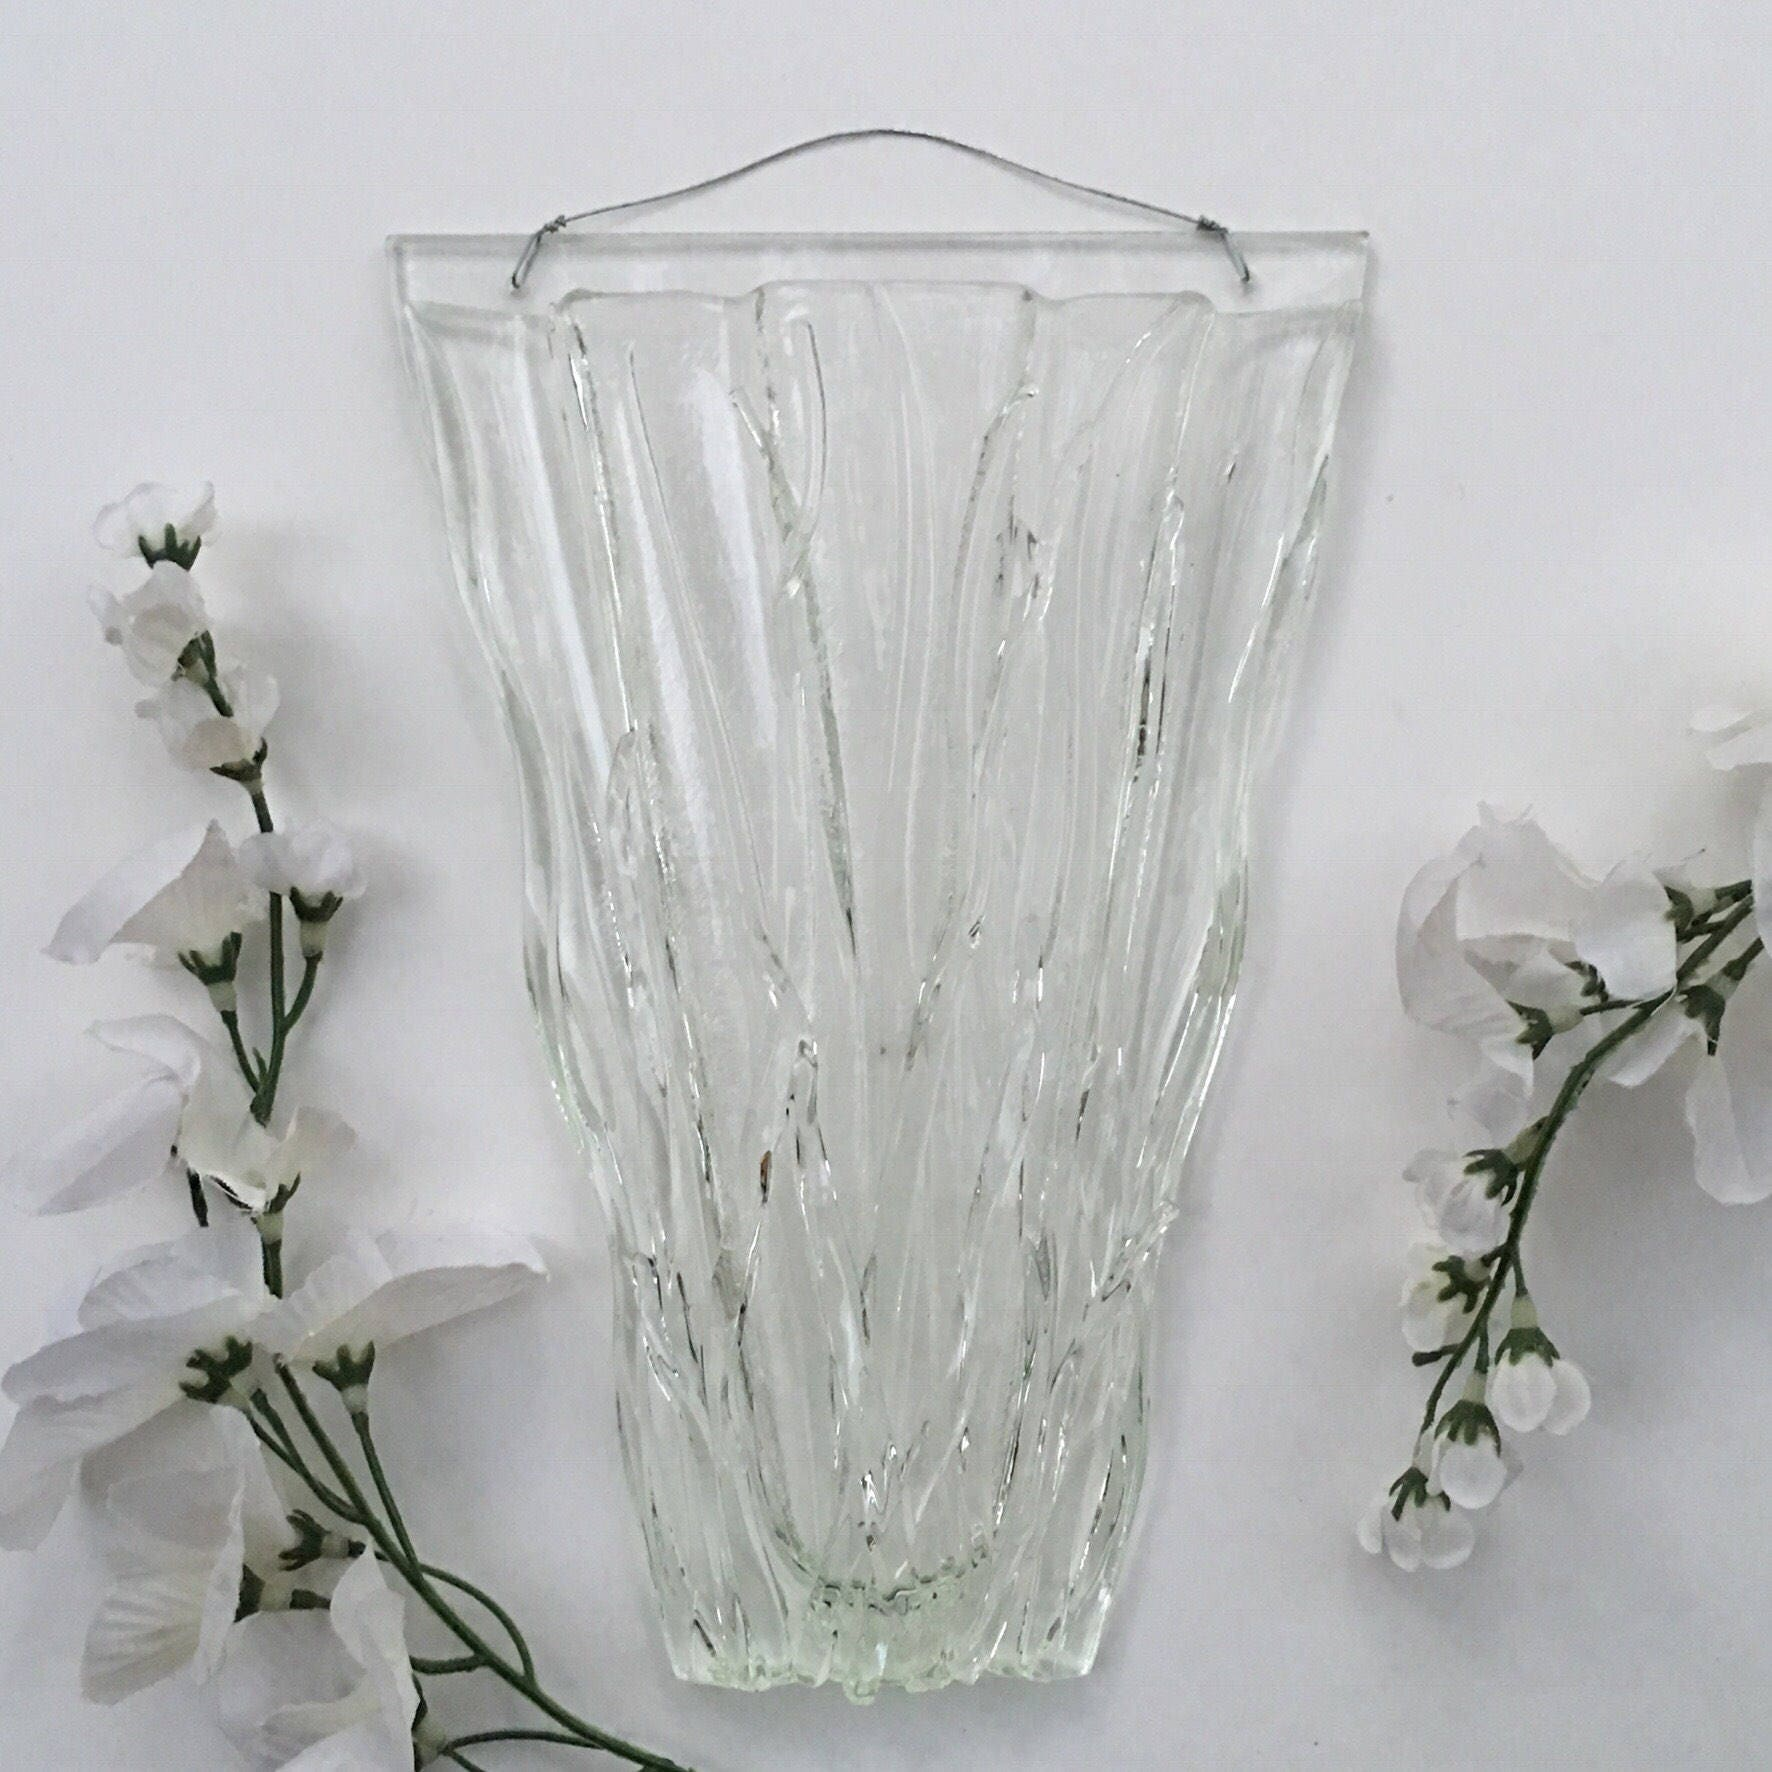 Med large clear grass wall art fused glass wall vase glass pocket wall art fused glass wall vase glass pocket reviewsmspy